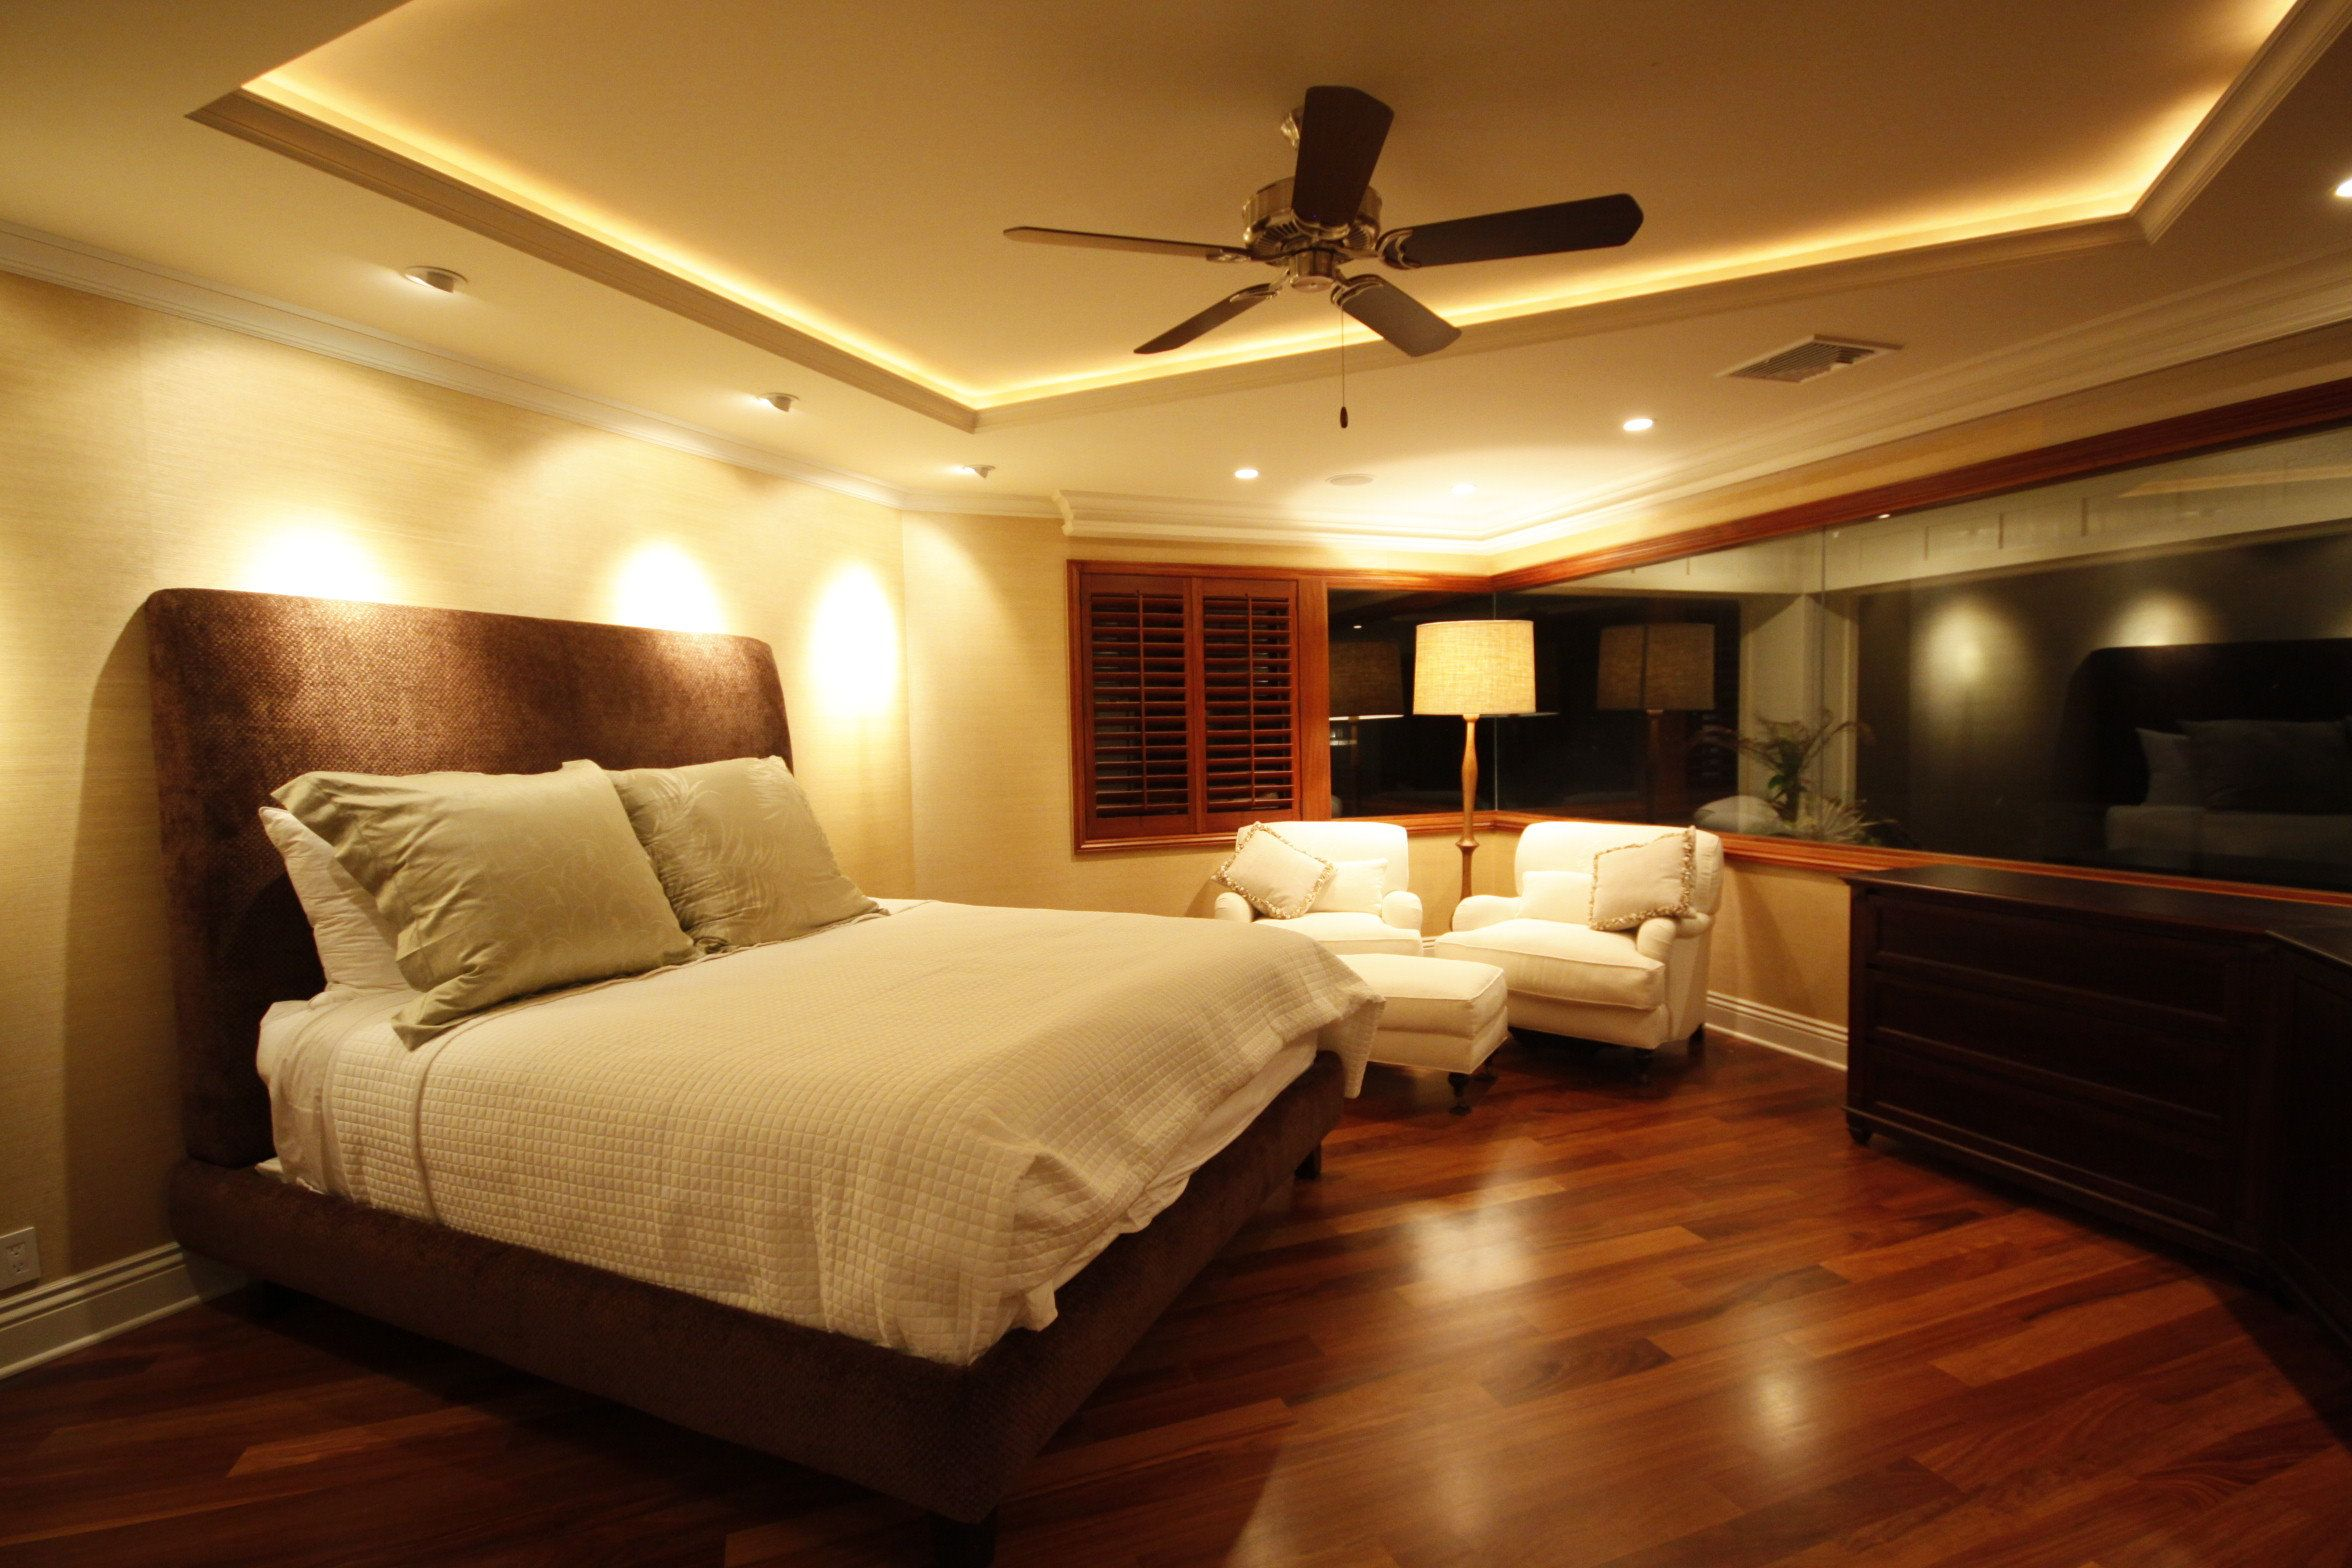 Appealing master bedroom modern decor with wooden floors for Master bedroom images